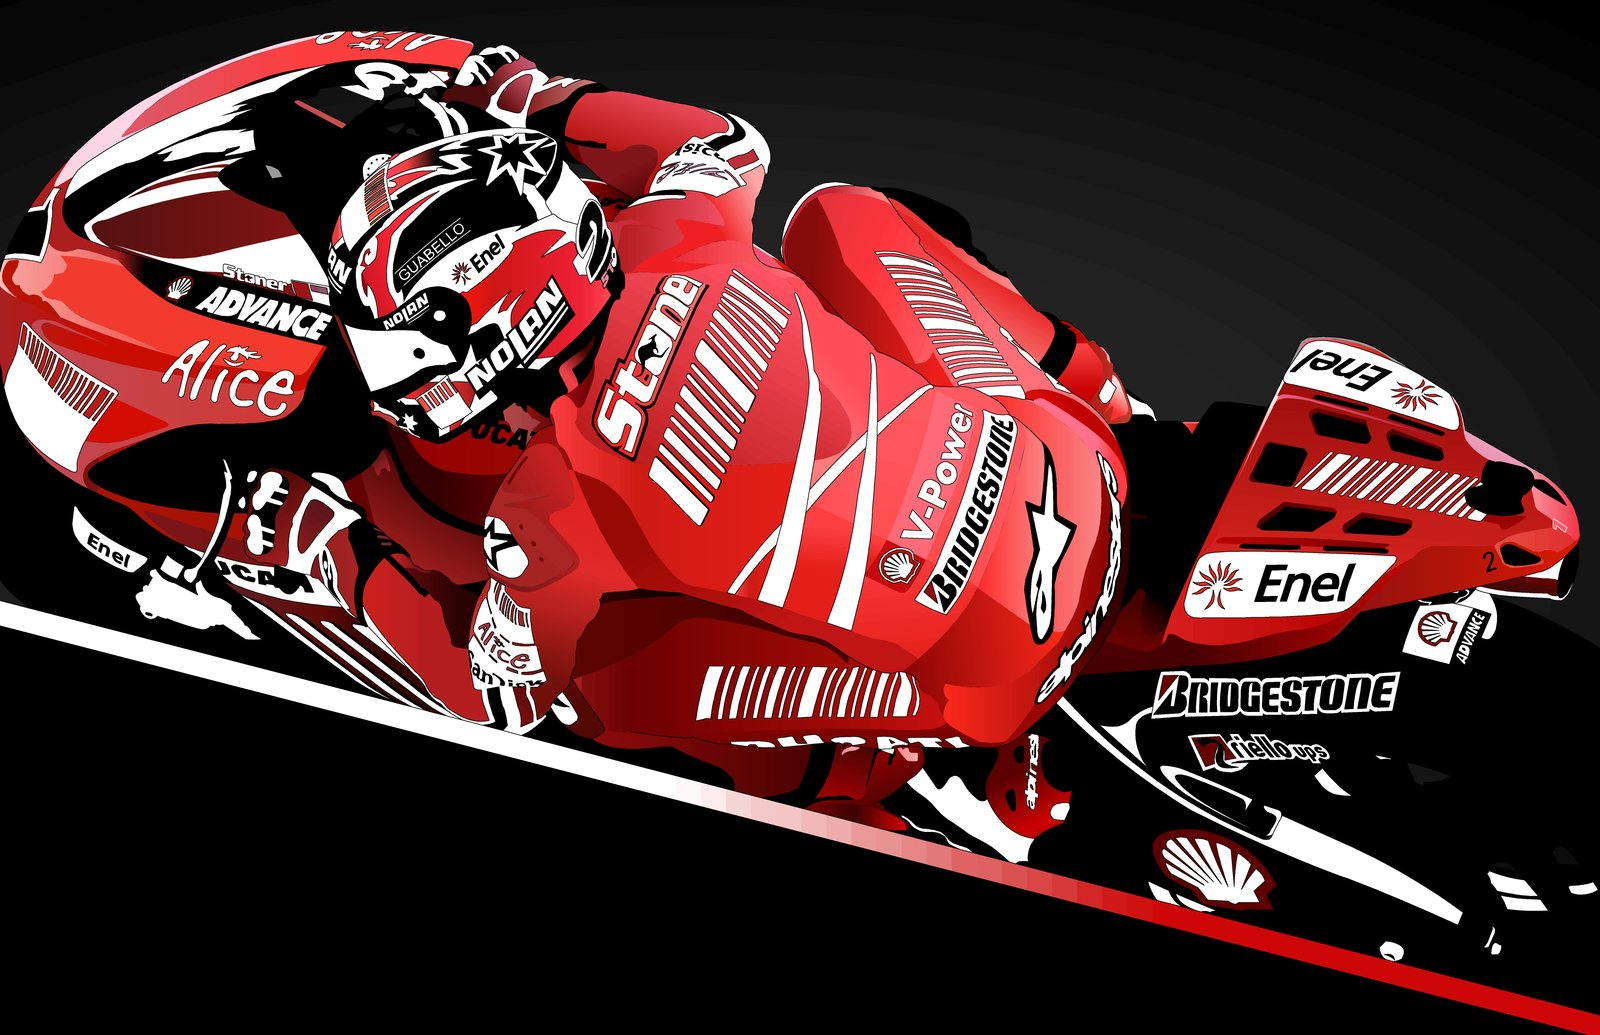 Casey Stoner Gp08 Wallpaper And Background Image